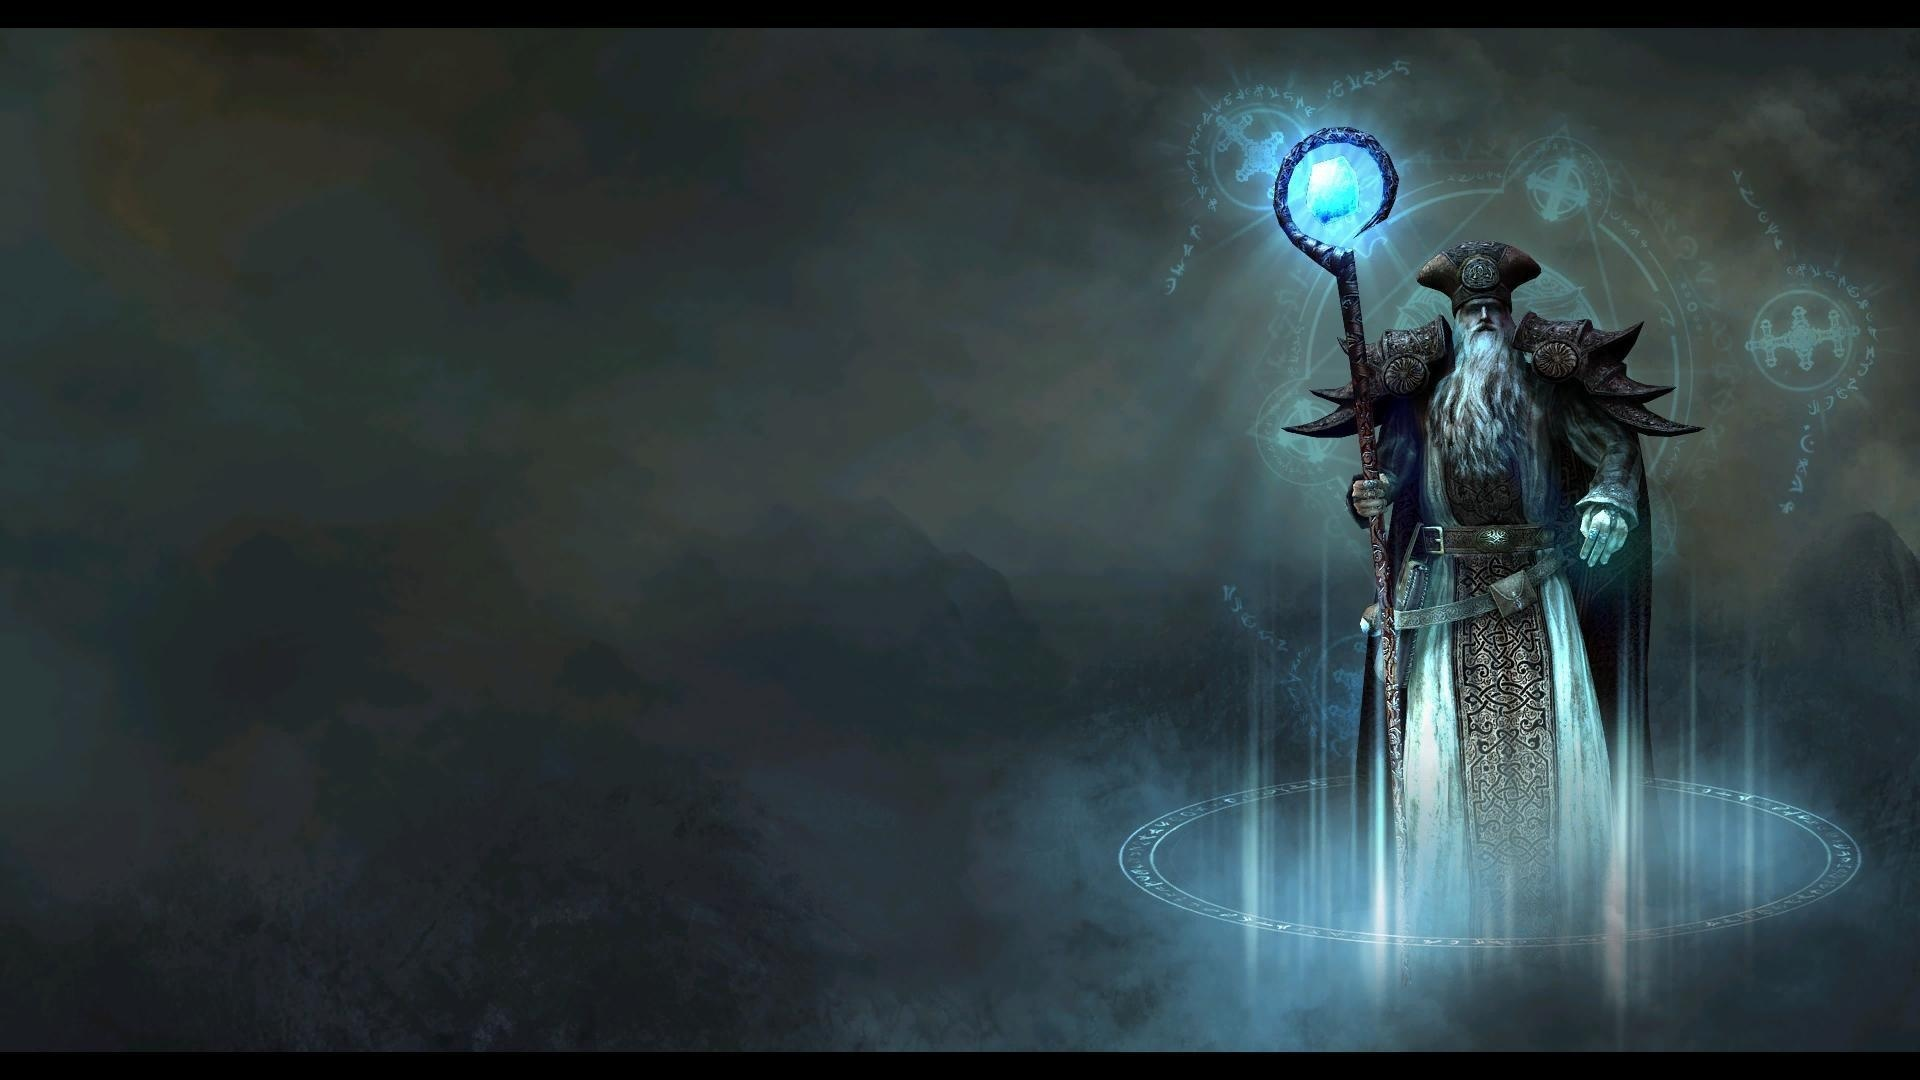 Awesome Wizard wallpaper 1920x1080 22336 1920x1080